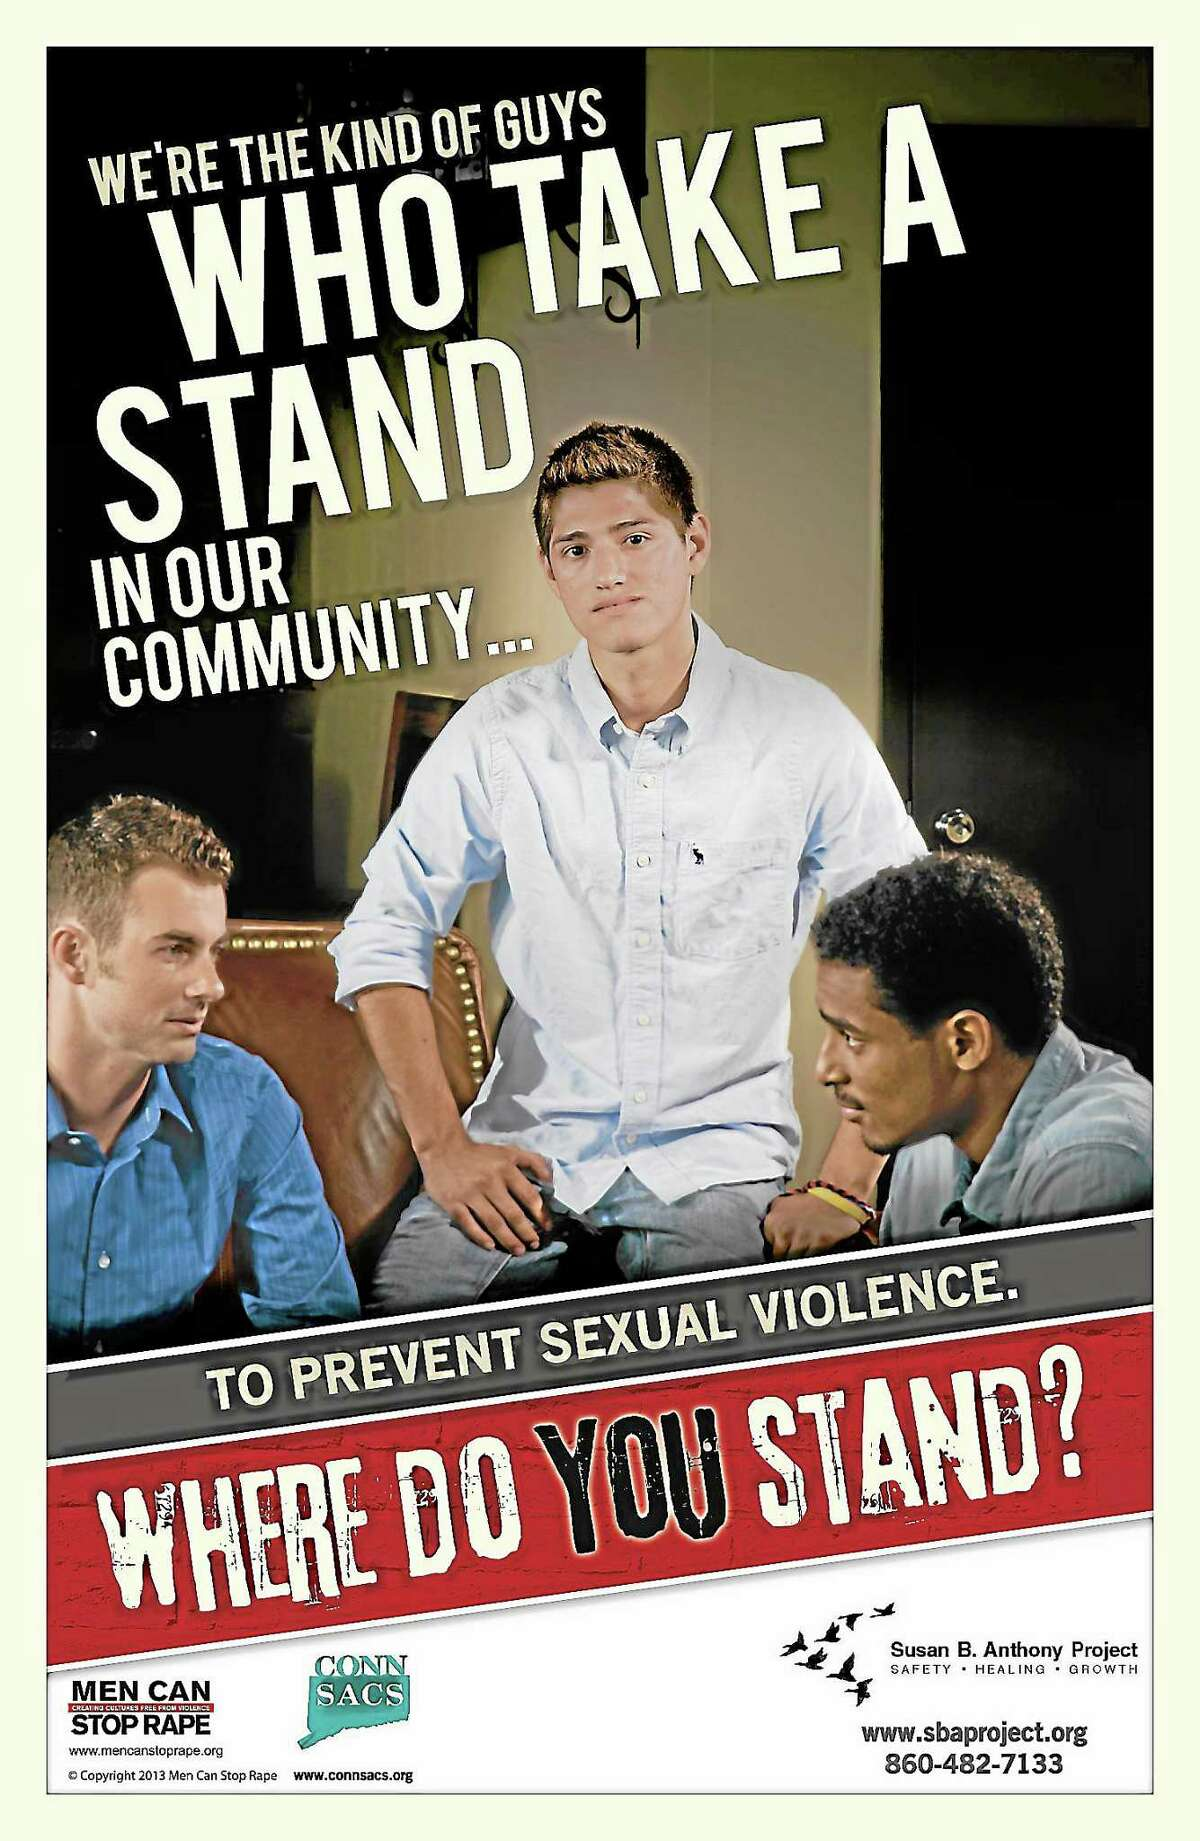 Men Can Stop Rape and CONNSACS joint campaign to stop violence against women.